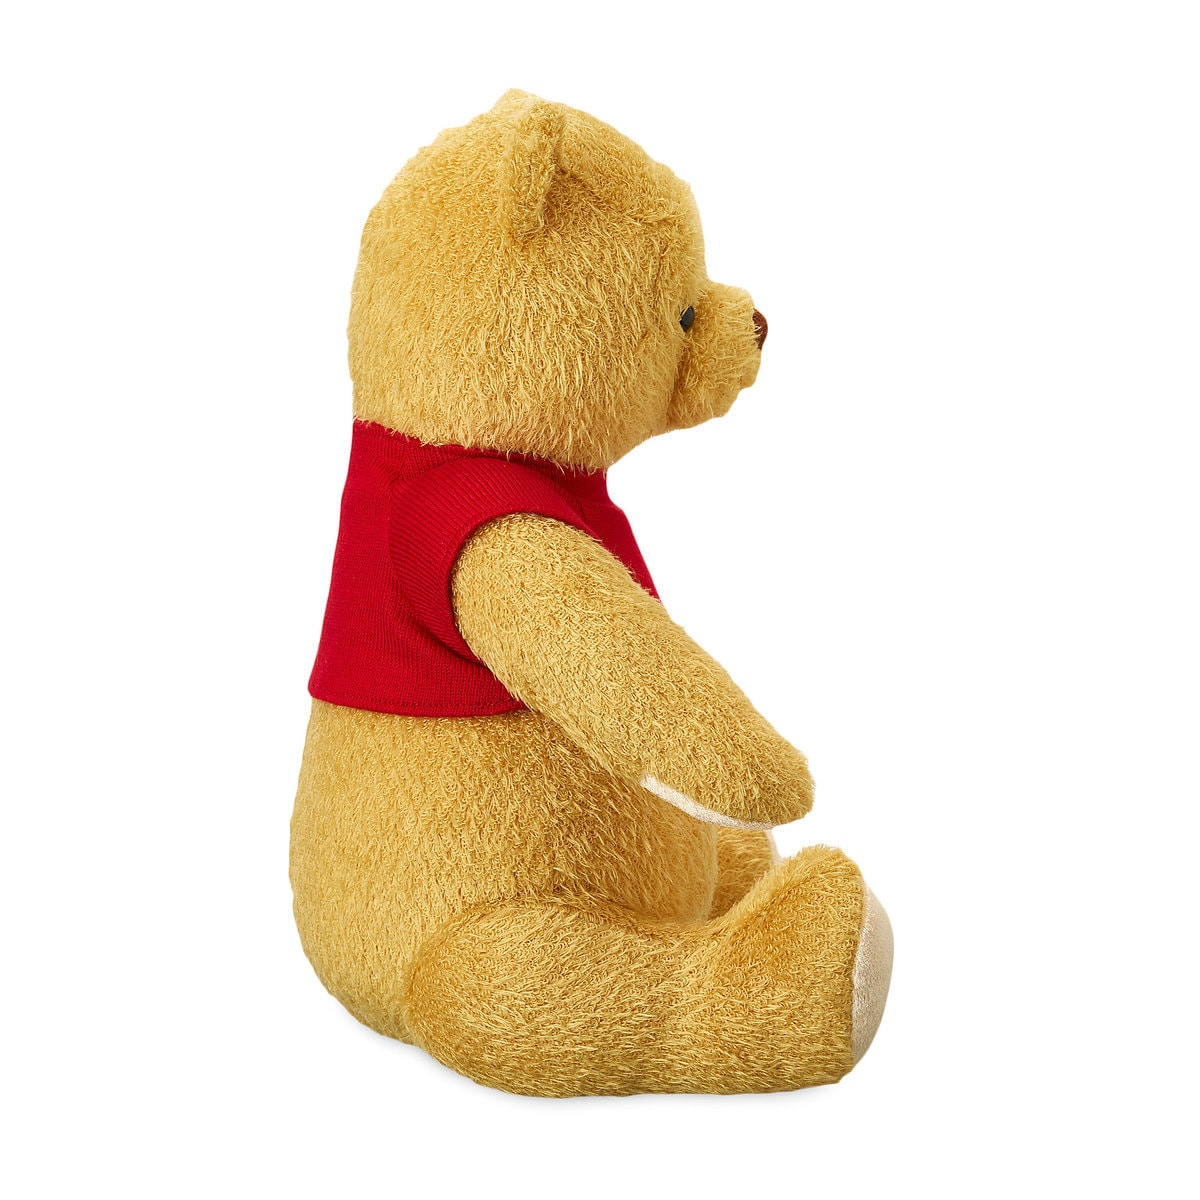 1c5500120a12 Product Image of Winnie the Pooh Plush - Christopher Robin - Medium   2